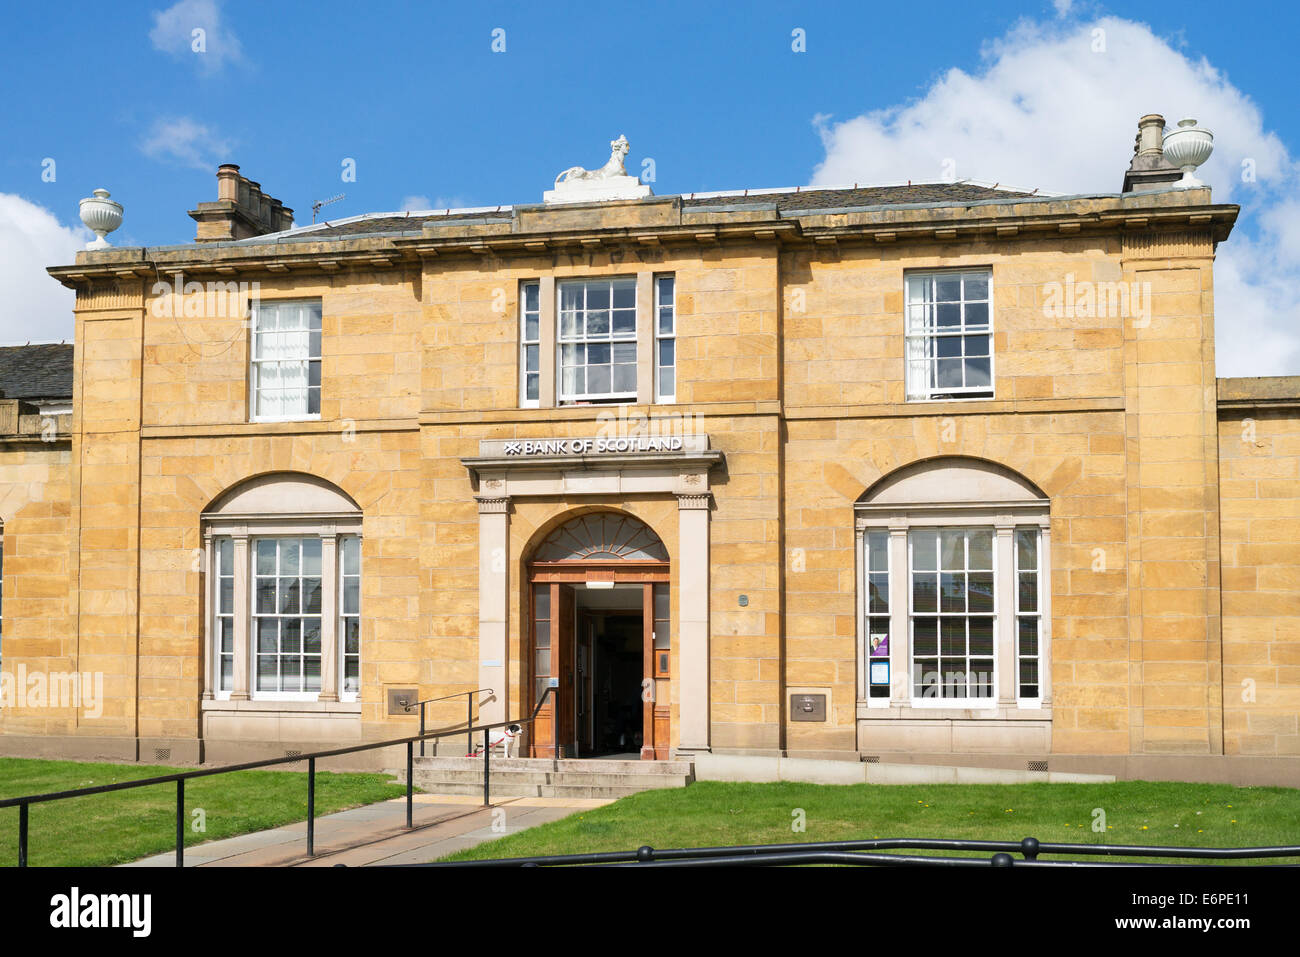 Bank of Scotland  Haddington, East Lothian,  Scotland, Europe - Stock Image